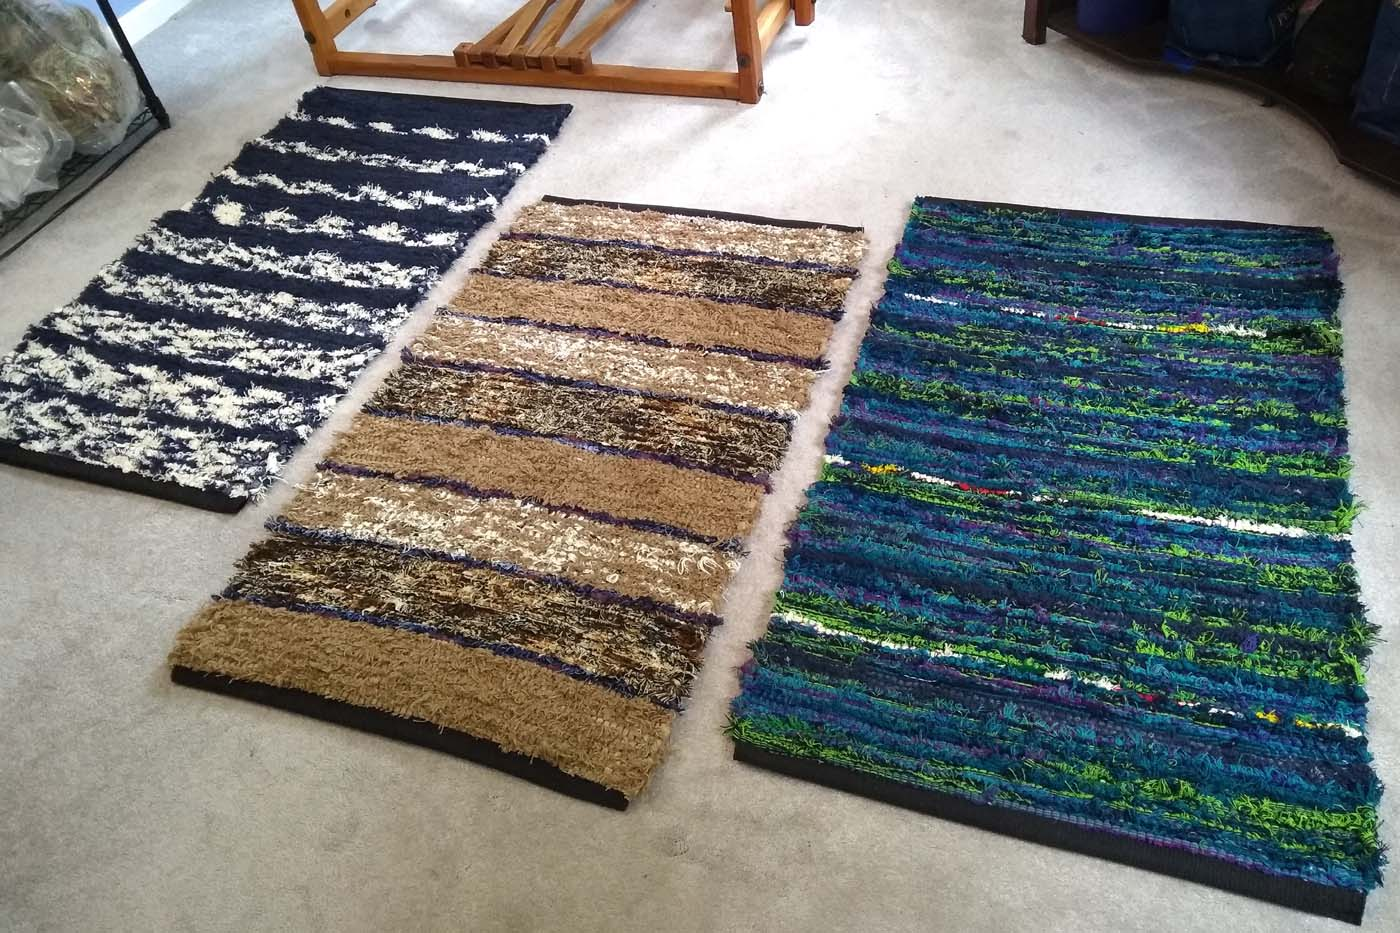 Three rugs are off the loom and ready for hemming.